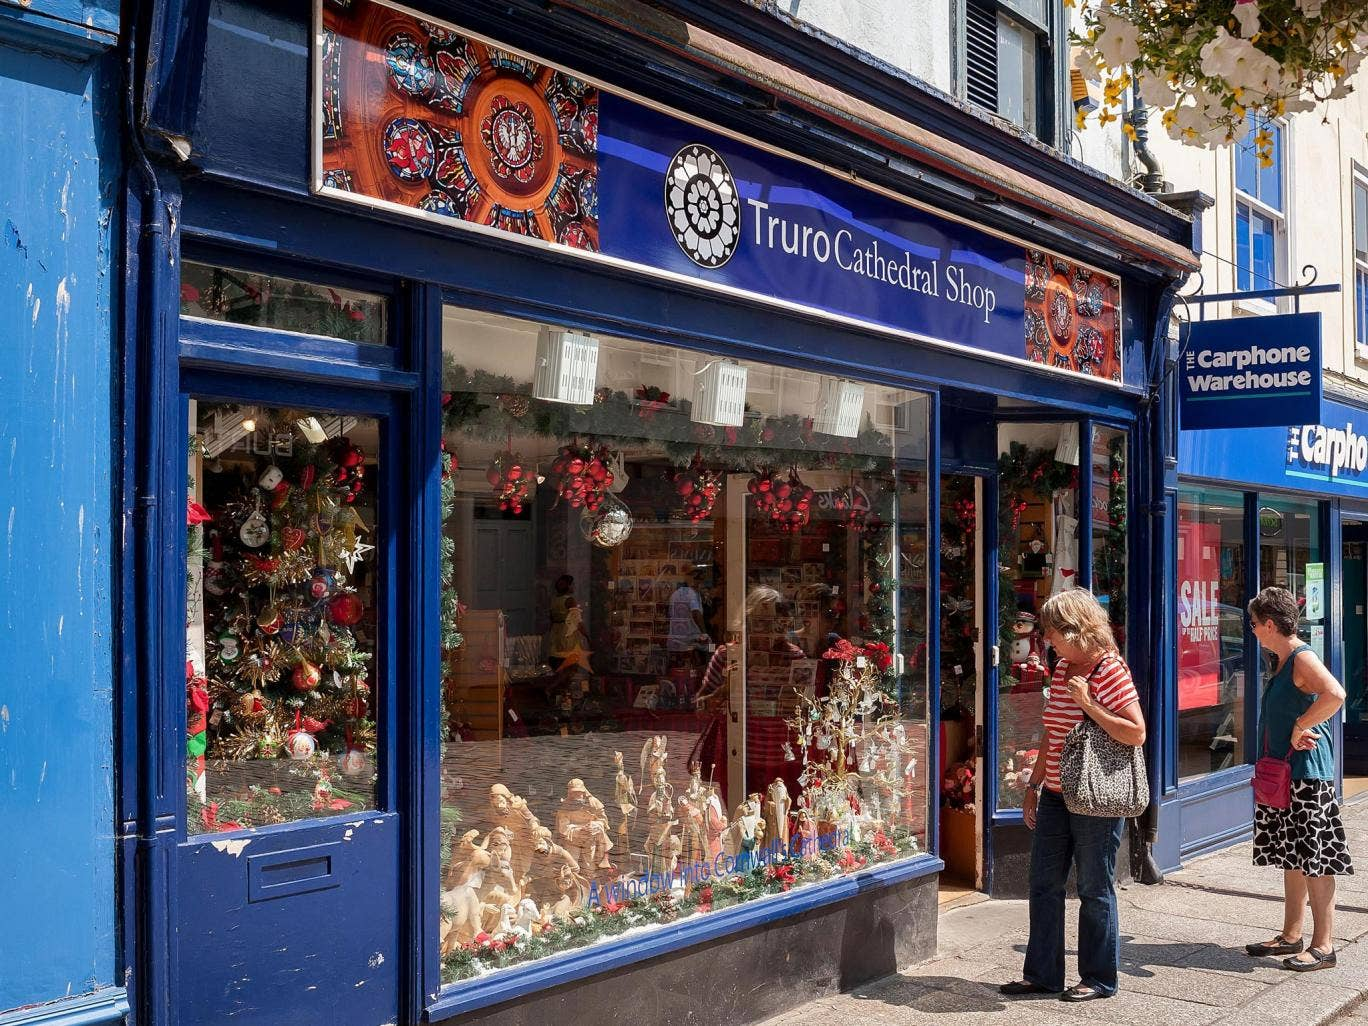 The Christmas themed Truro Cathedral Shop opened in Truro today despite record summer temperatures